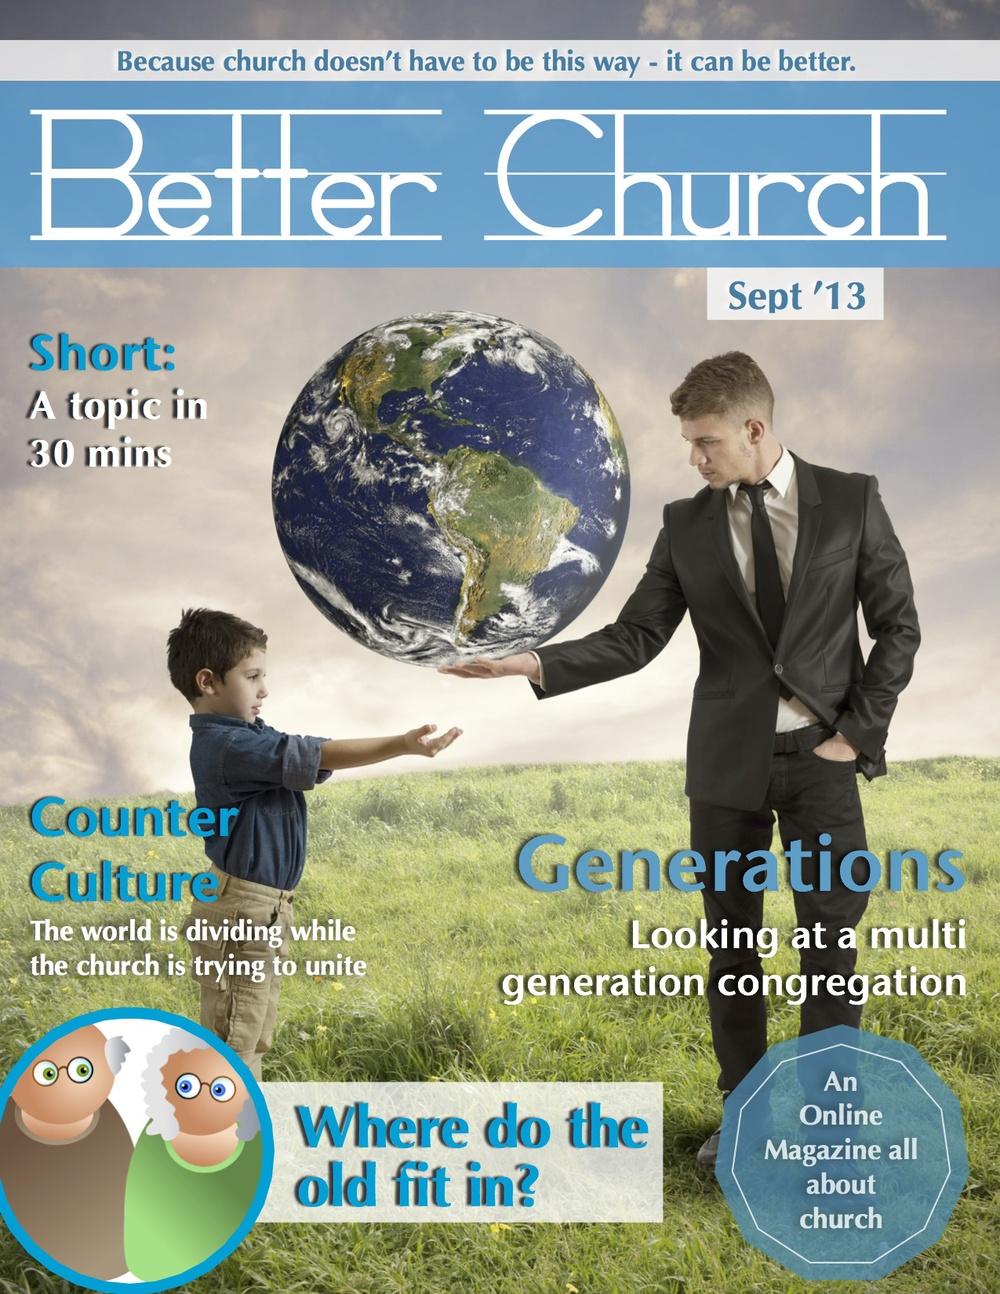 Better Church - September '13.jpg